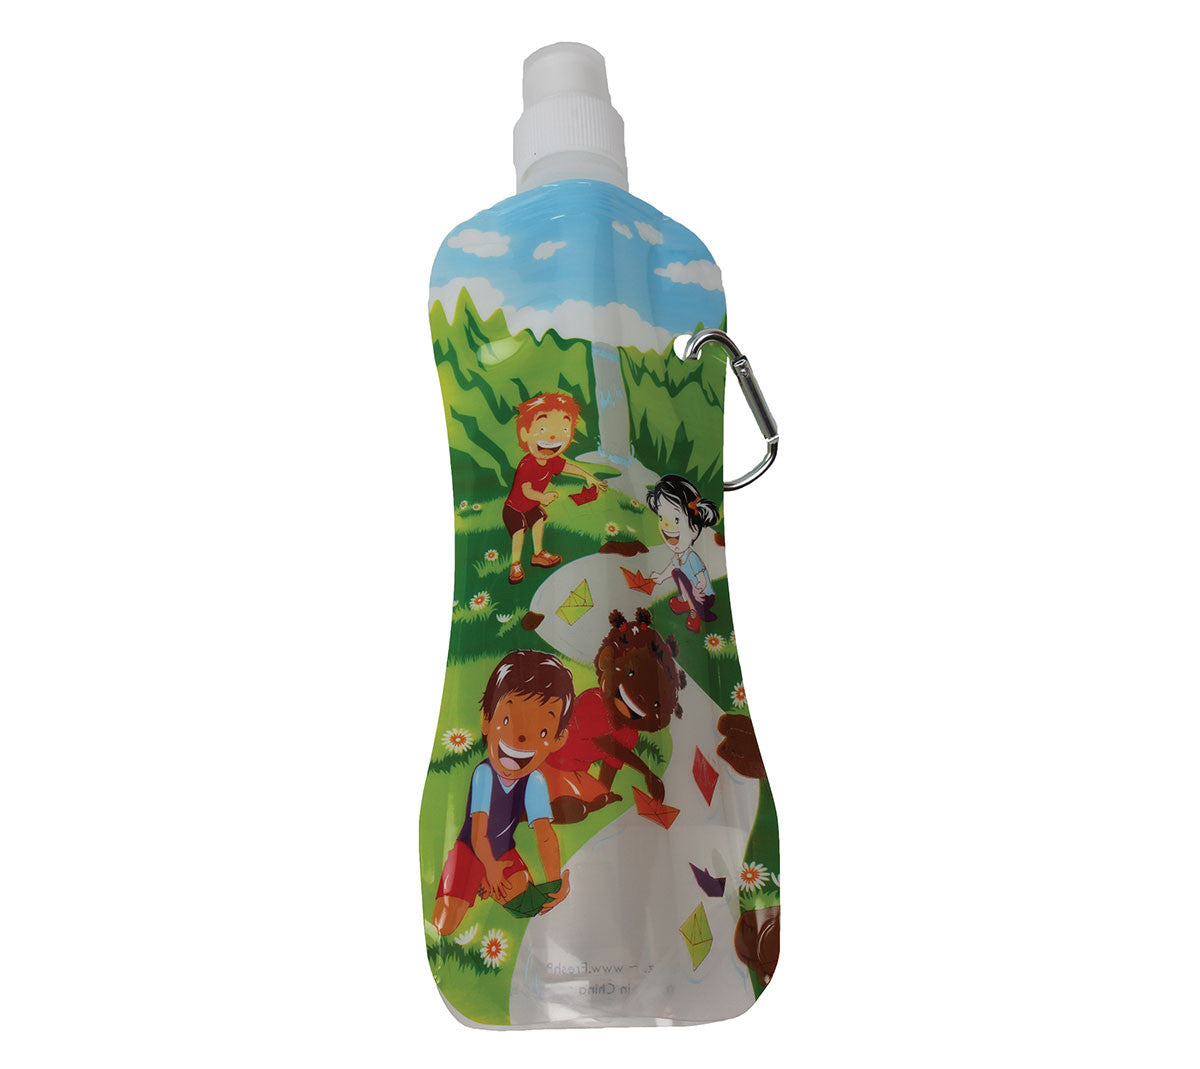 Fresh Baby's Kid's Water Bottle is specially designed for little hands! Our kid-sized collapsible water bottle stands tall when full and folds neatly when empty - small enough to fit in a lunchbox or backpack. Drinking plenty of water is essential to active children.  Fresh Baby's waterfall design let's children see the water in the bottle and makes drinking water fun!